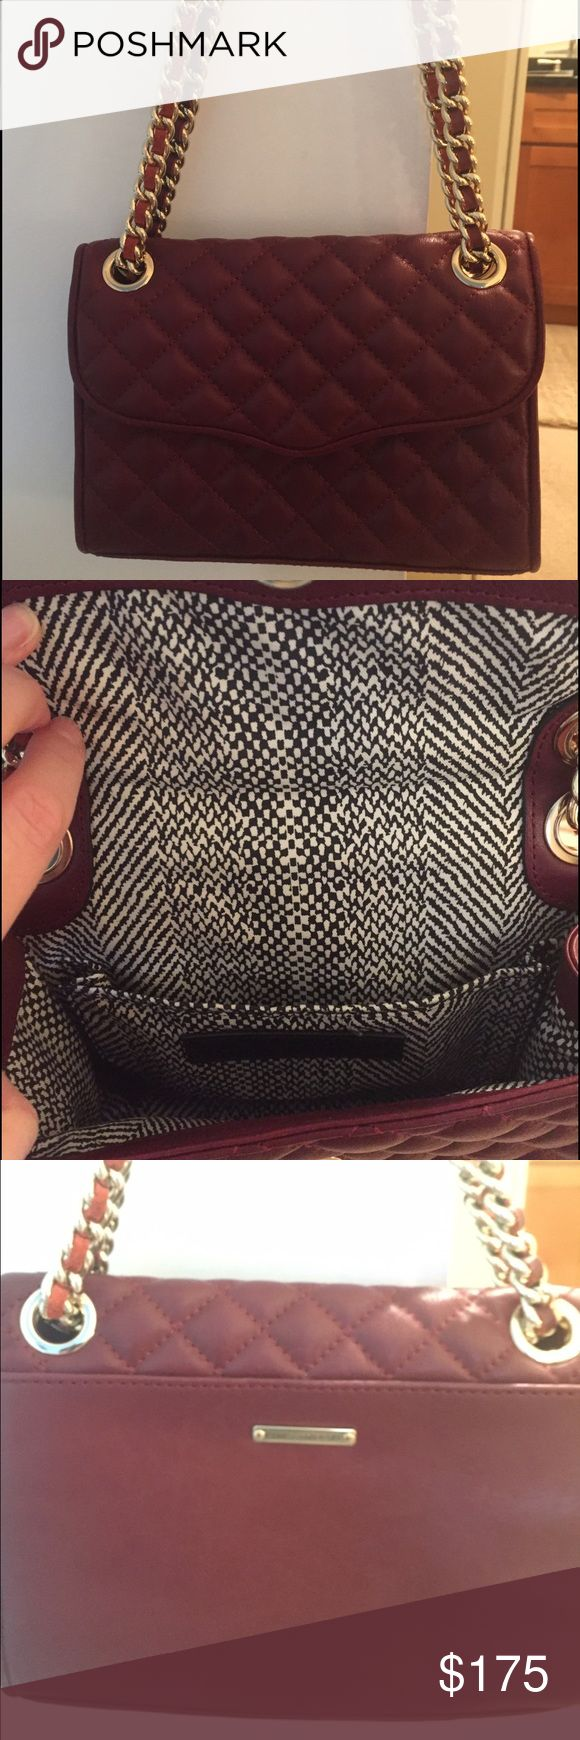 Rebecca Minkoff full size quilted cross body Again, excellent condition.  Only used it 5-6 times and was purchased at Nordstrom. Rebecca Minkoff Bags Crossbody Bags